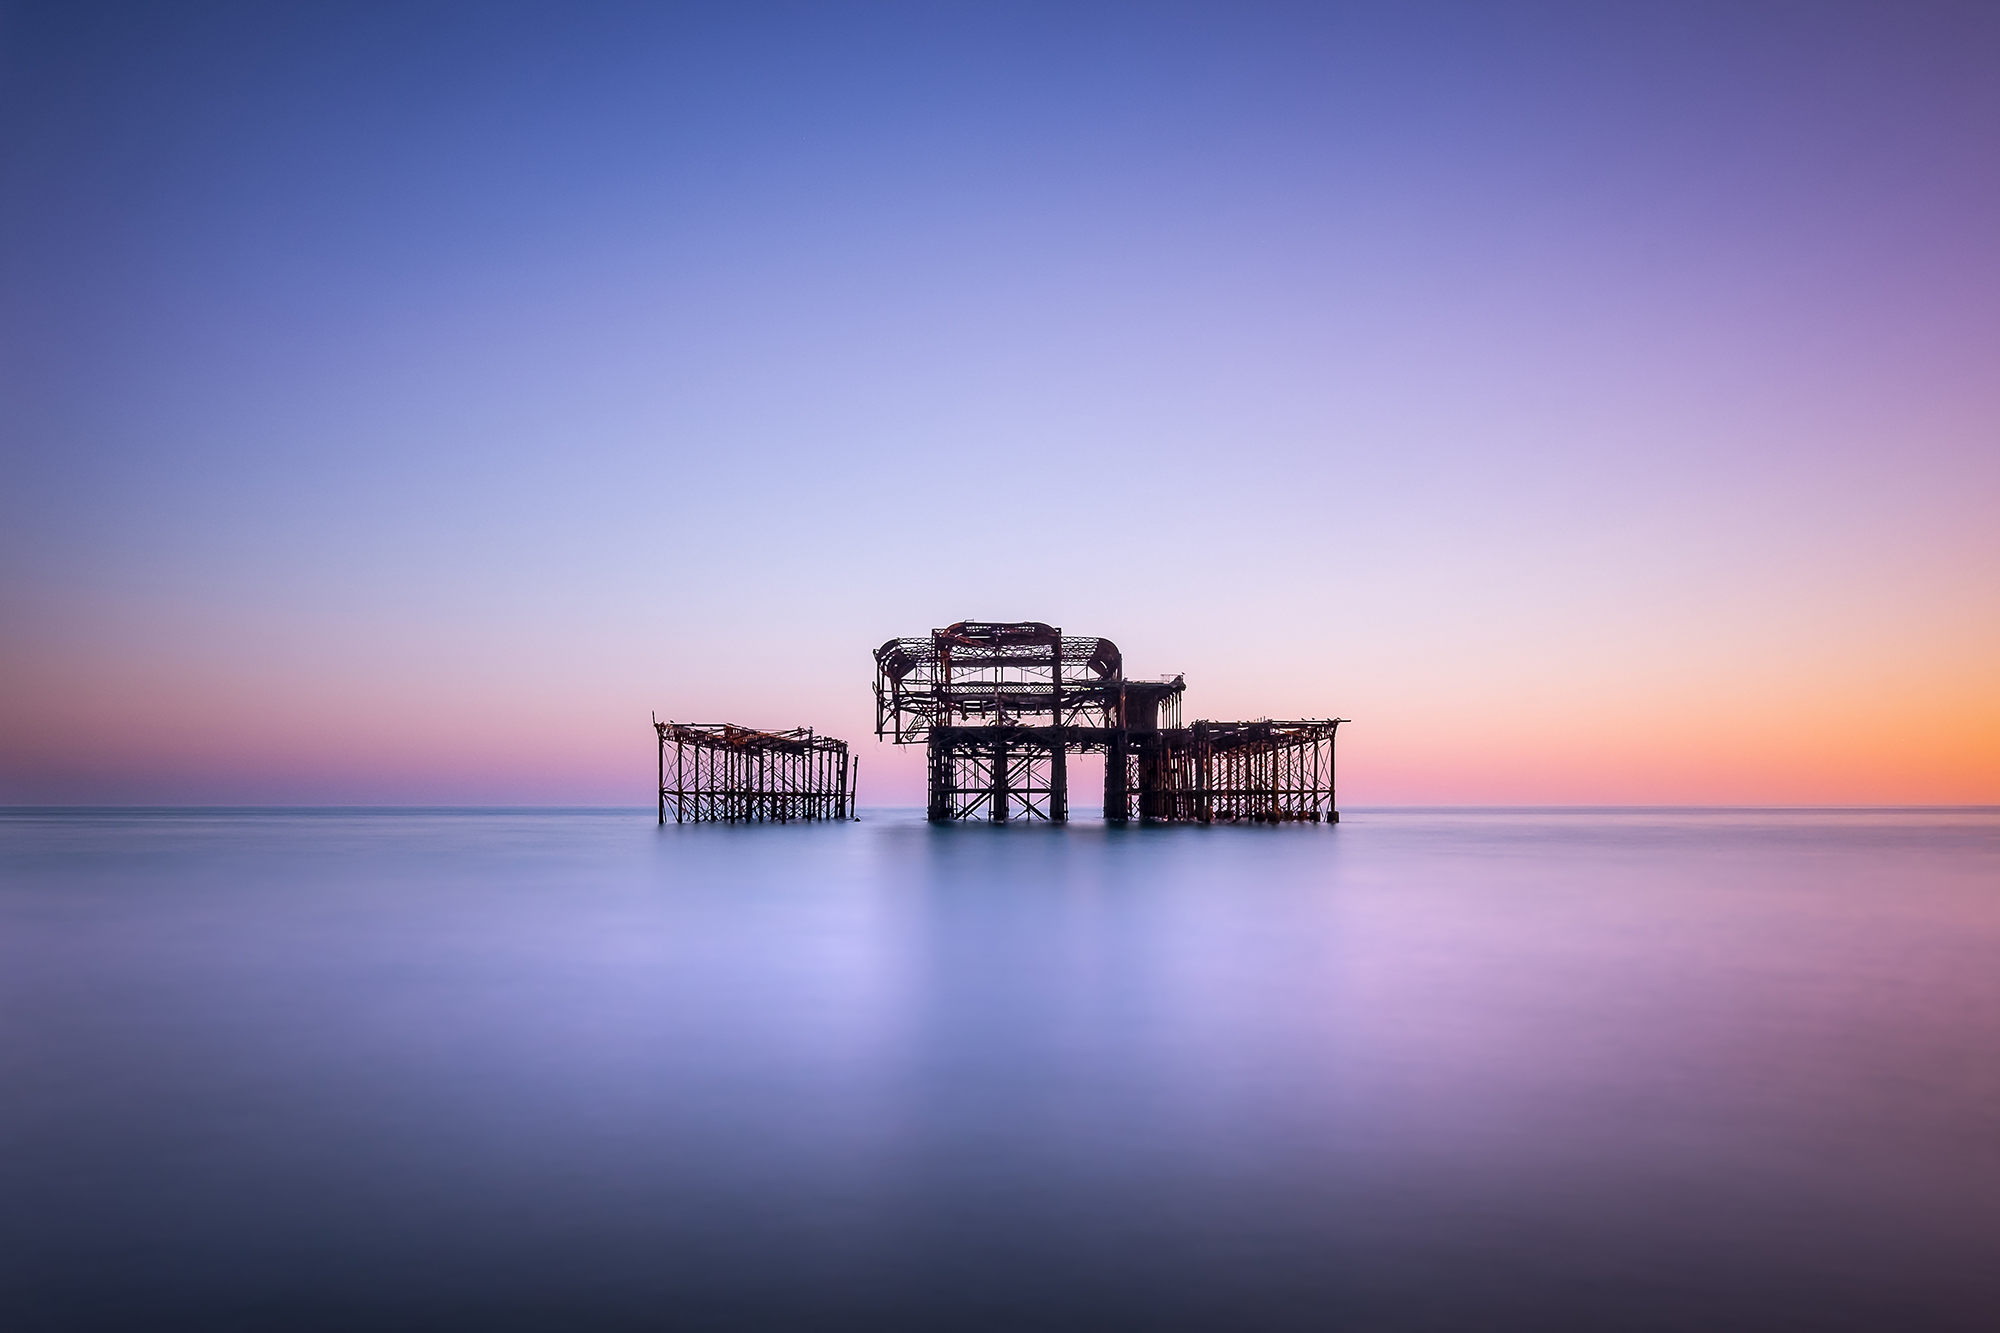 Long exposure photo of the West Pier, Brighton, England by Trevor Sherwin